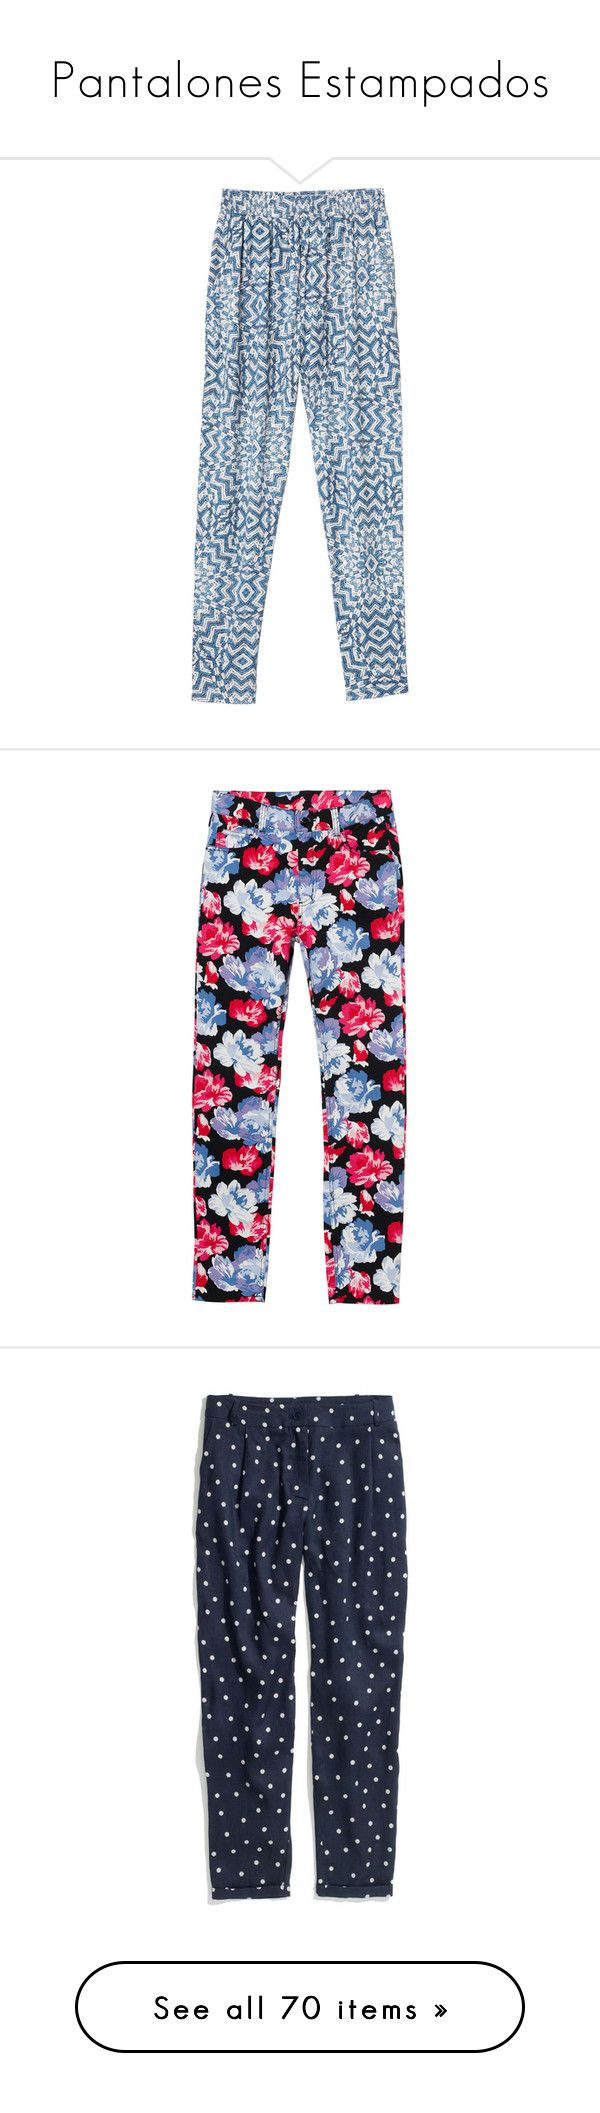 """""""Pantalones Estampados"""" by maitirodriguez ❤ liked on Polyvore featuring pants, bottoms, trousers, jeans, twistocean, pocket pants, loose fit pants, cocktail pants, stretch waist pants and monki"""